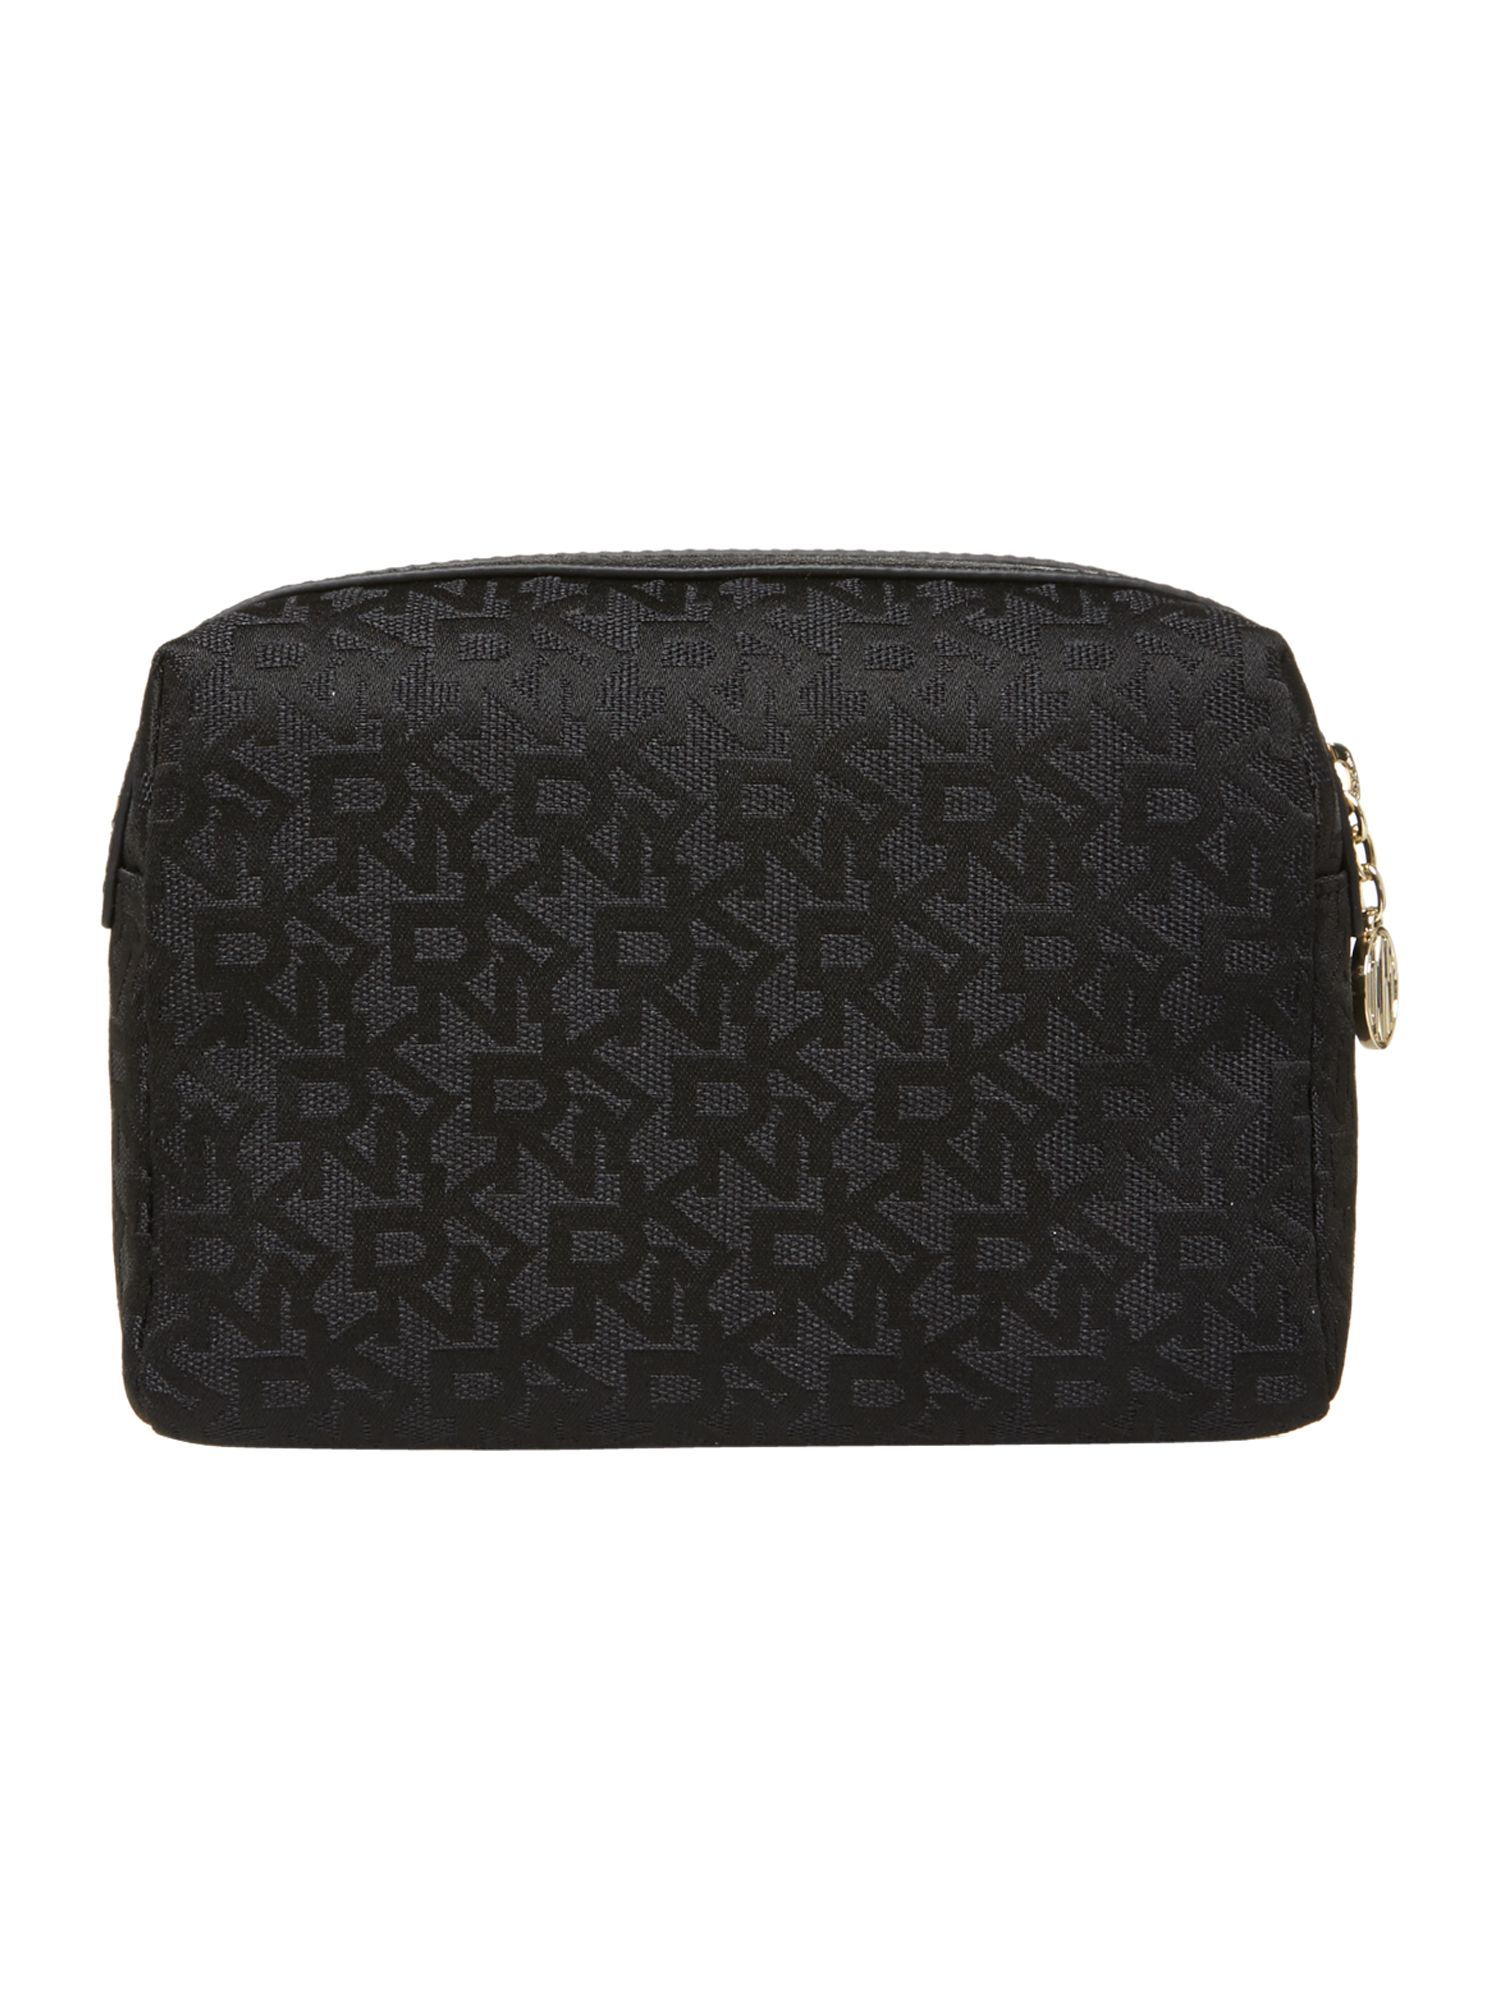 Saffiano black cosmetic case